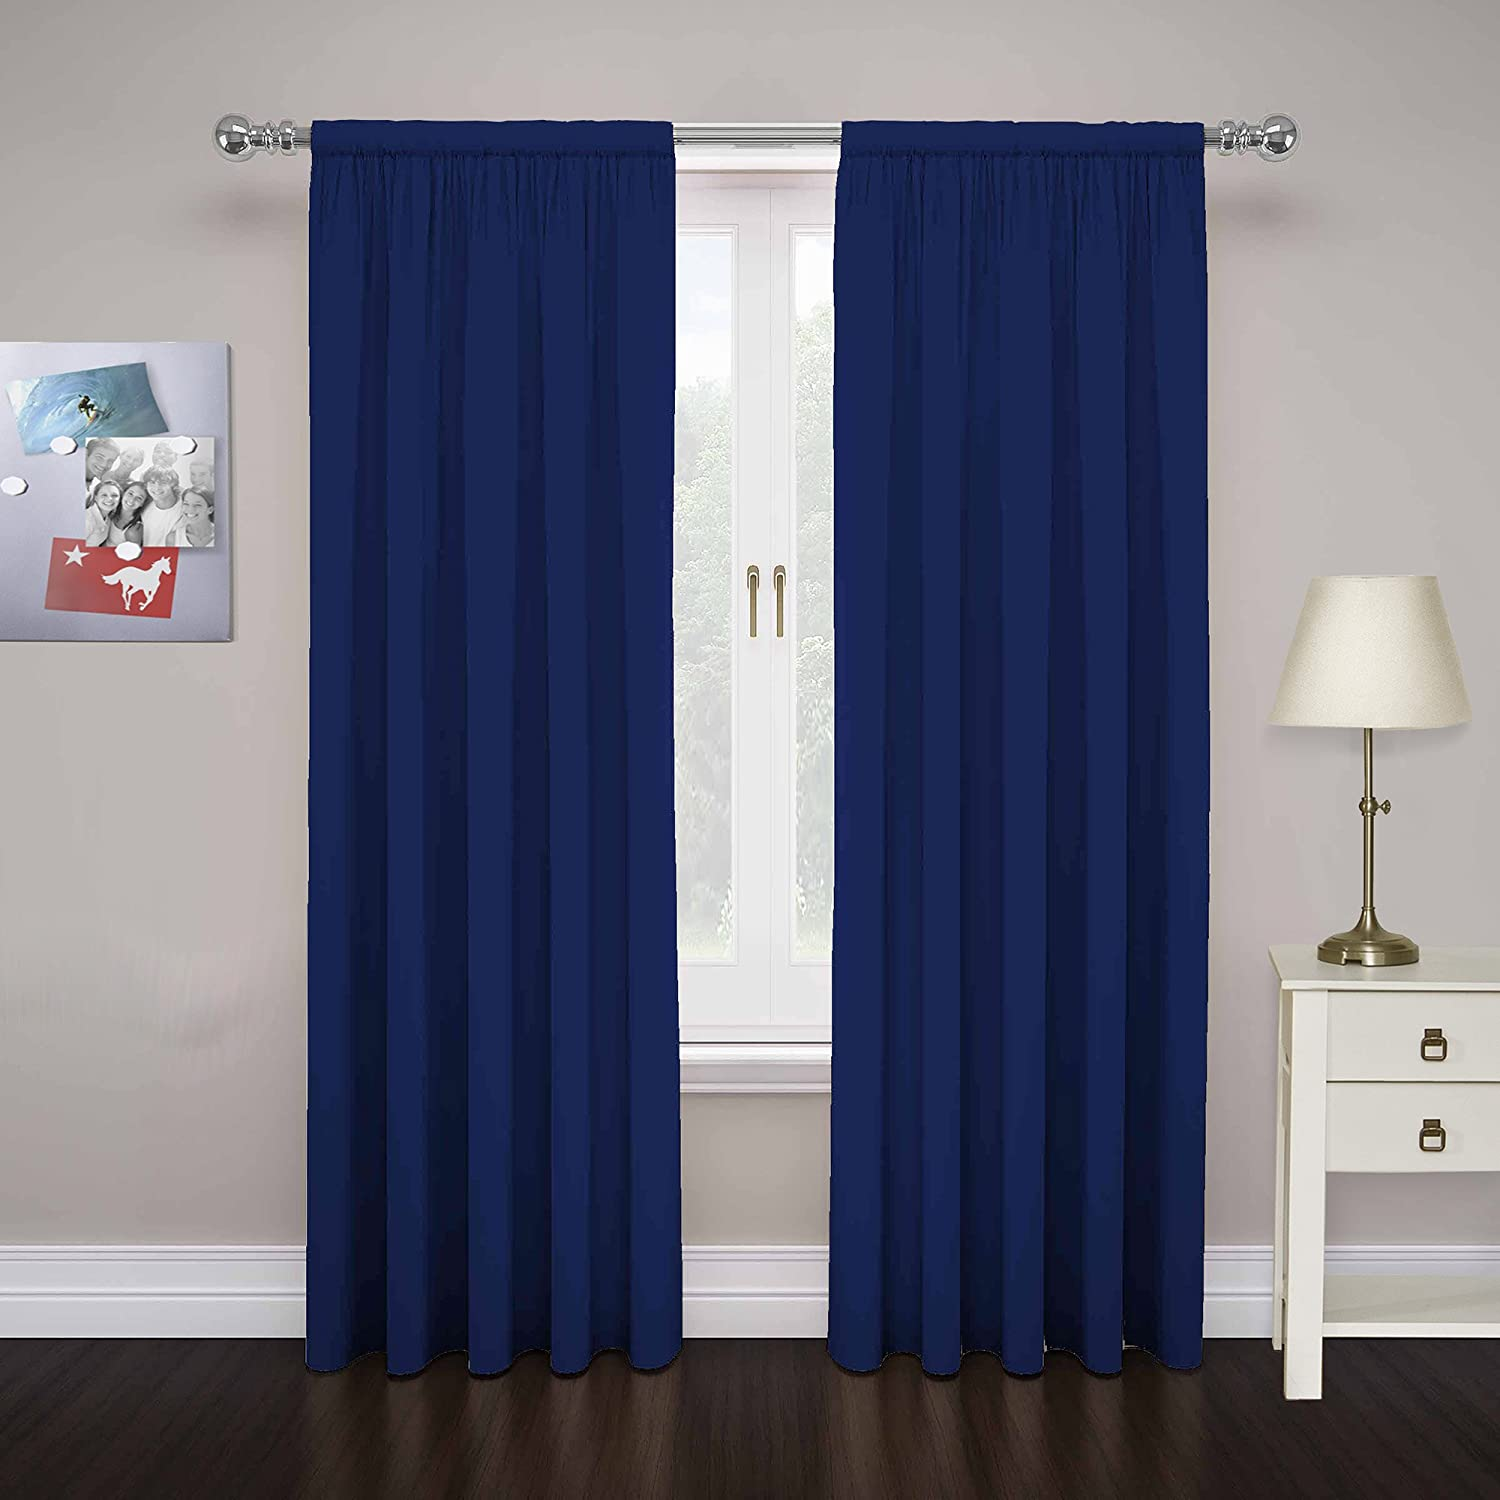 Cobalt blue curtains - Amazon Com Pairs To Go 15110080x084tel Cadenza 80 Inch By 84 Inch Microfiber Window Panel Pair Teal Home Kitchen